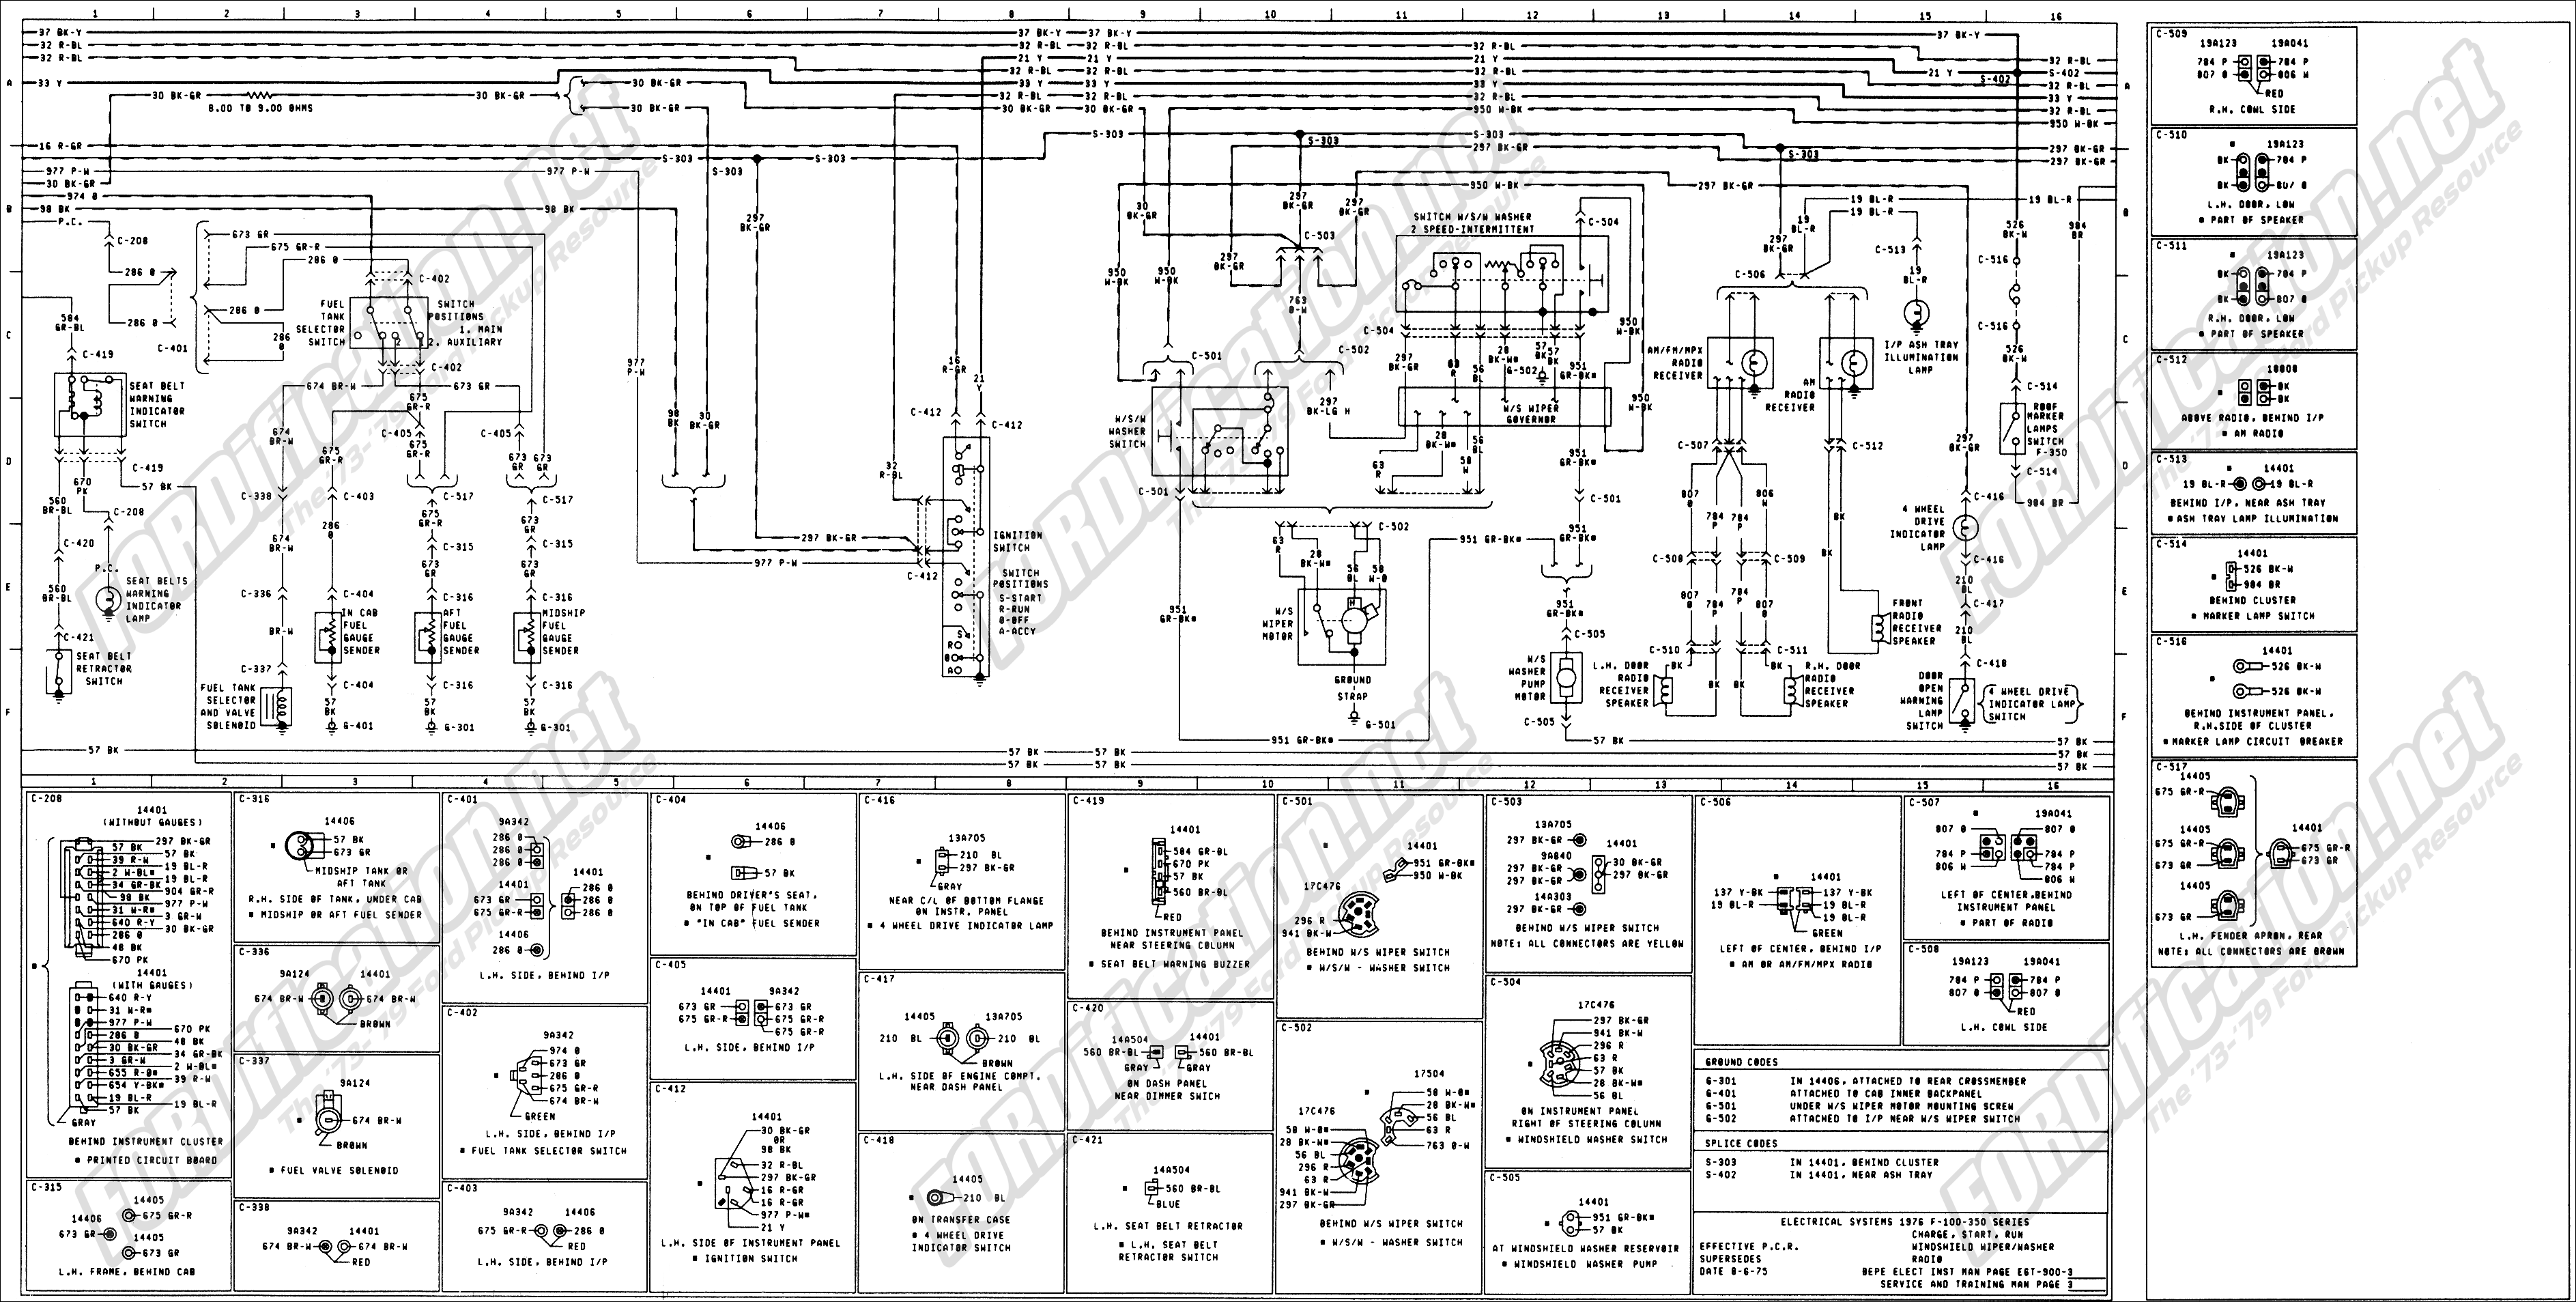 wiring_76master_3of9 1973 1979 ford truck wiring diagrams & schematics fordification net wiring schematics at honlapkeszites.co